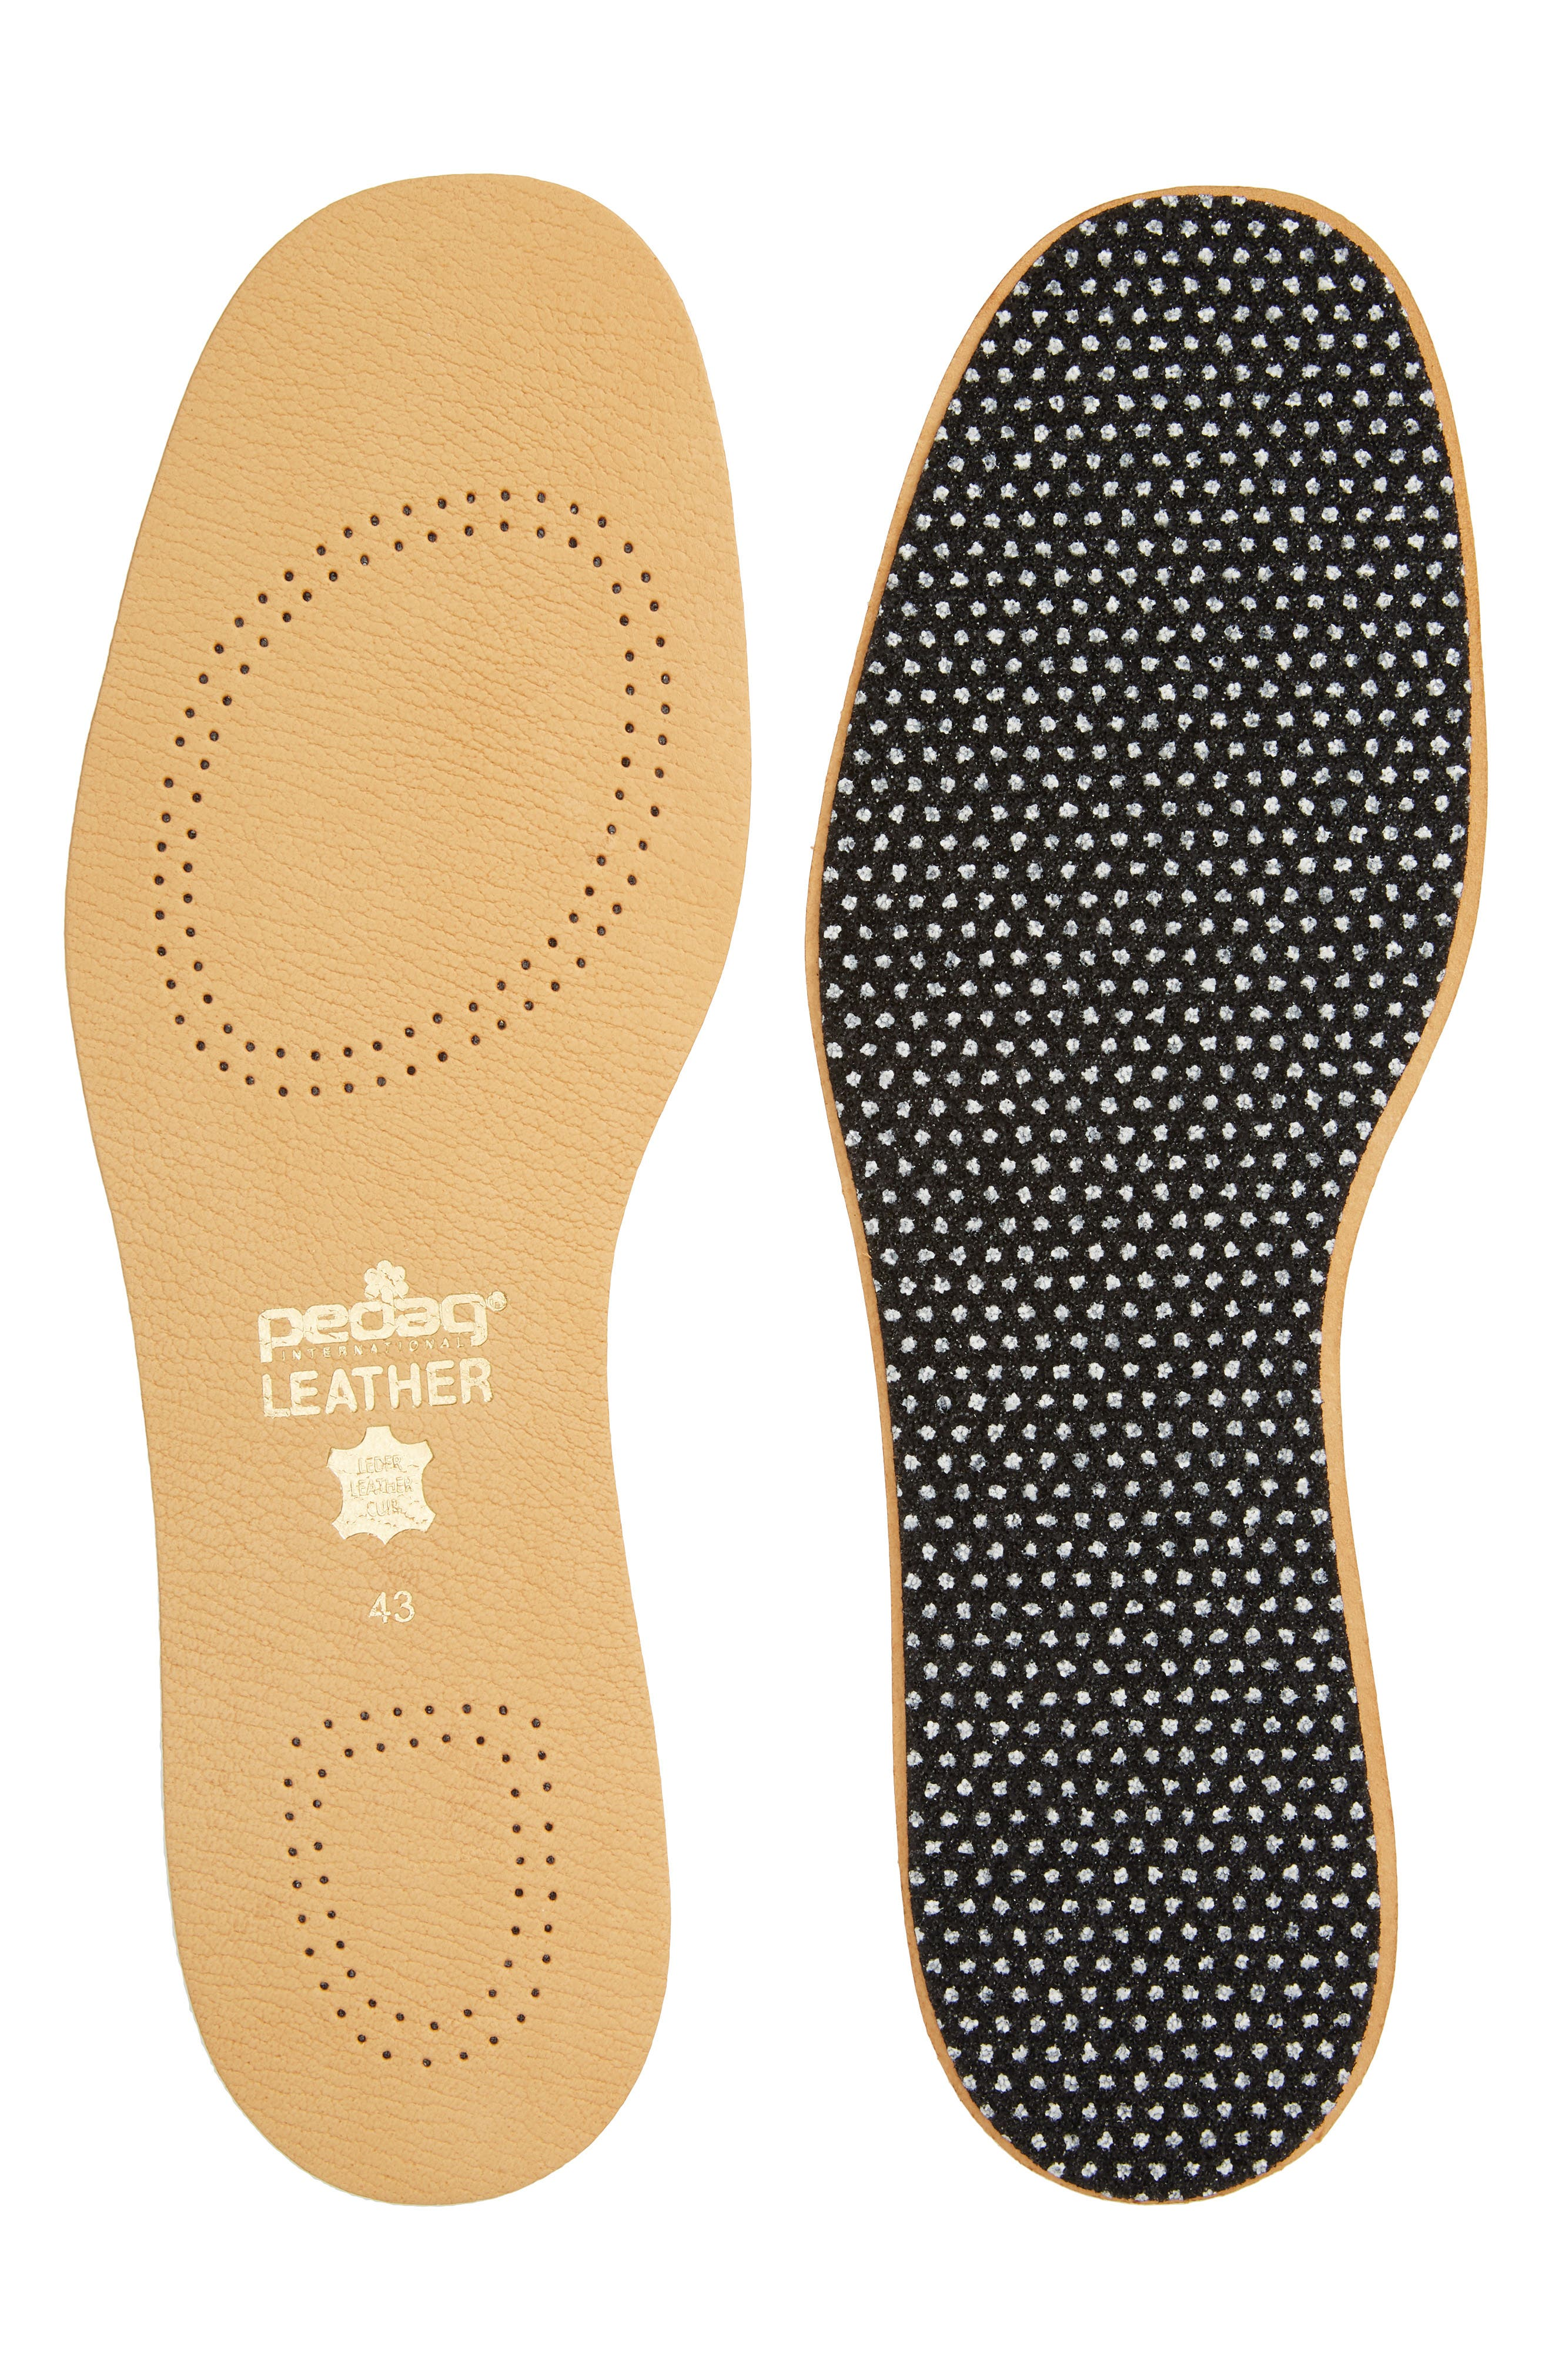 Leather Insole,                             Main thumbnail 1, color,                             Tan